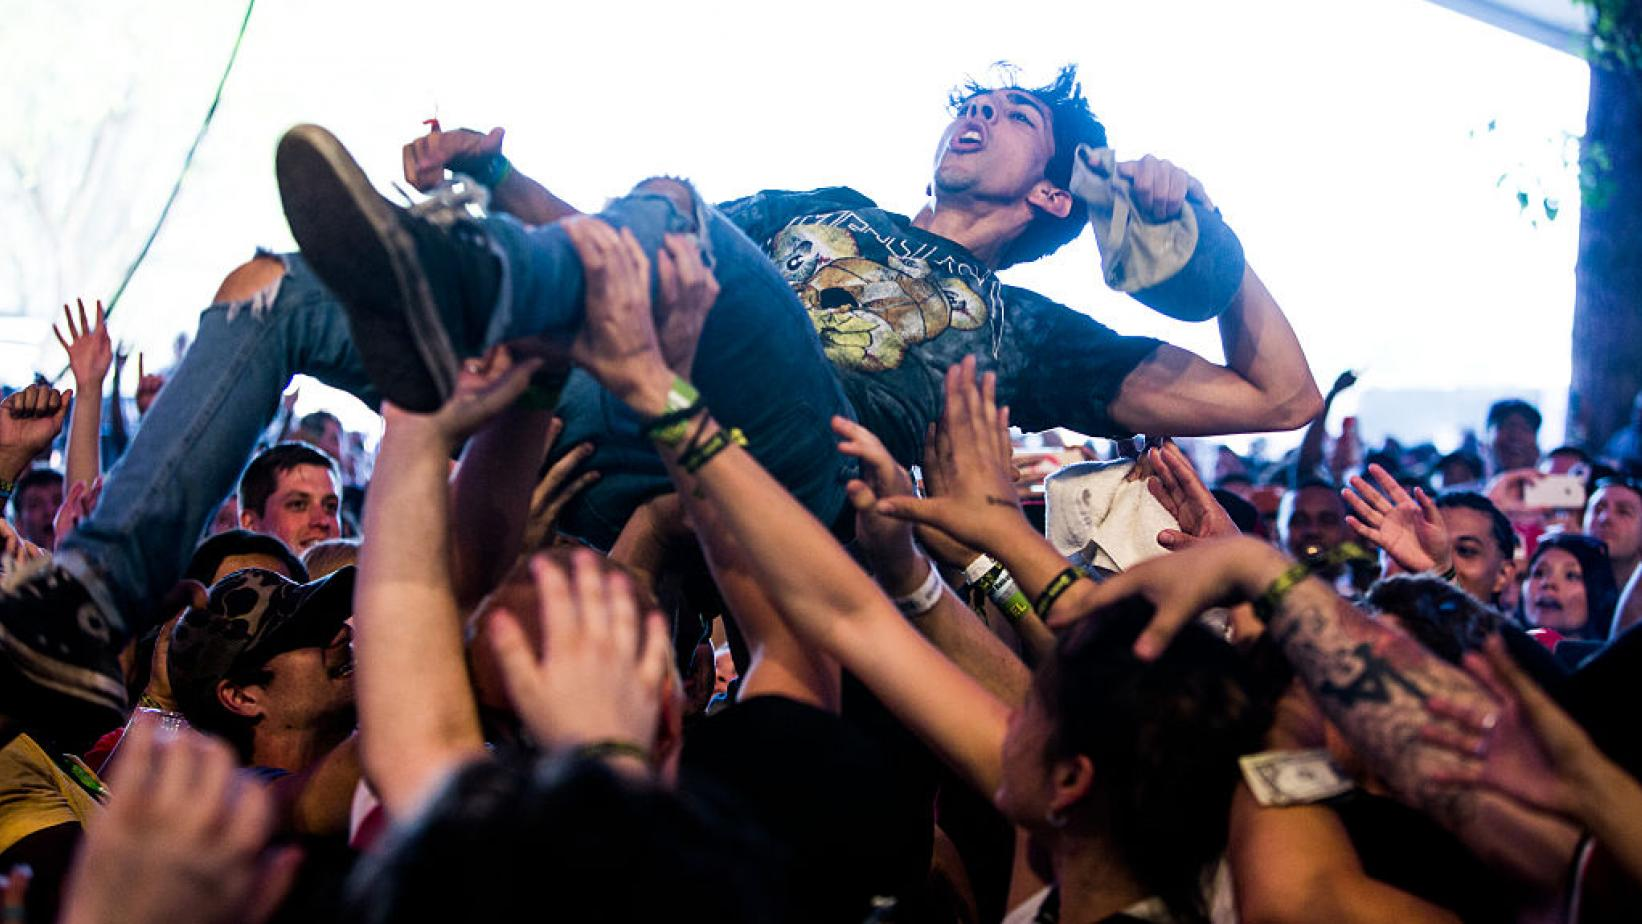 Fans crowd-surf at SXSW 2016